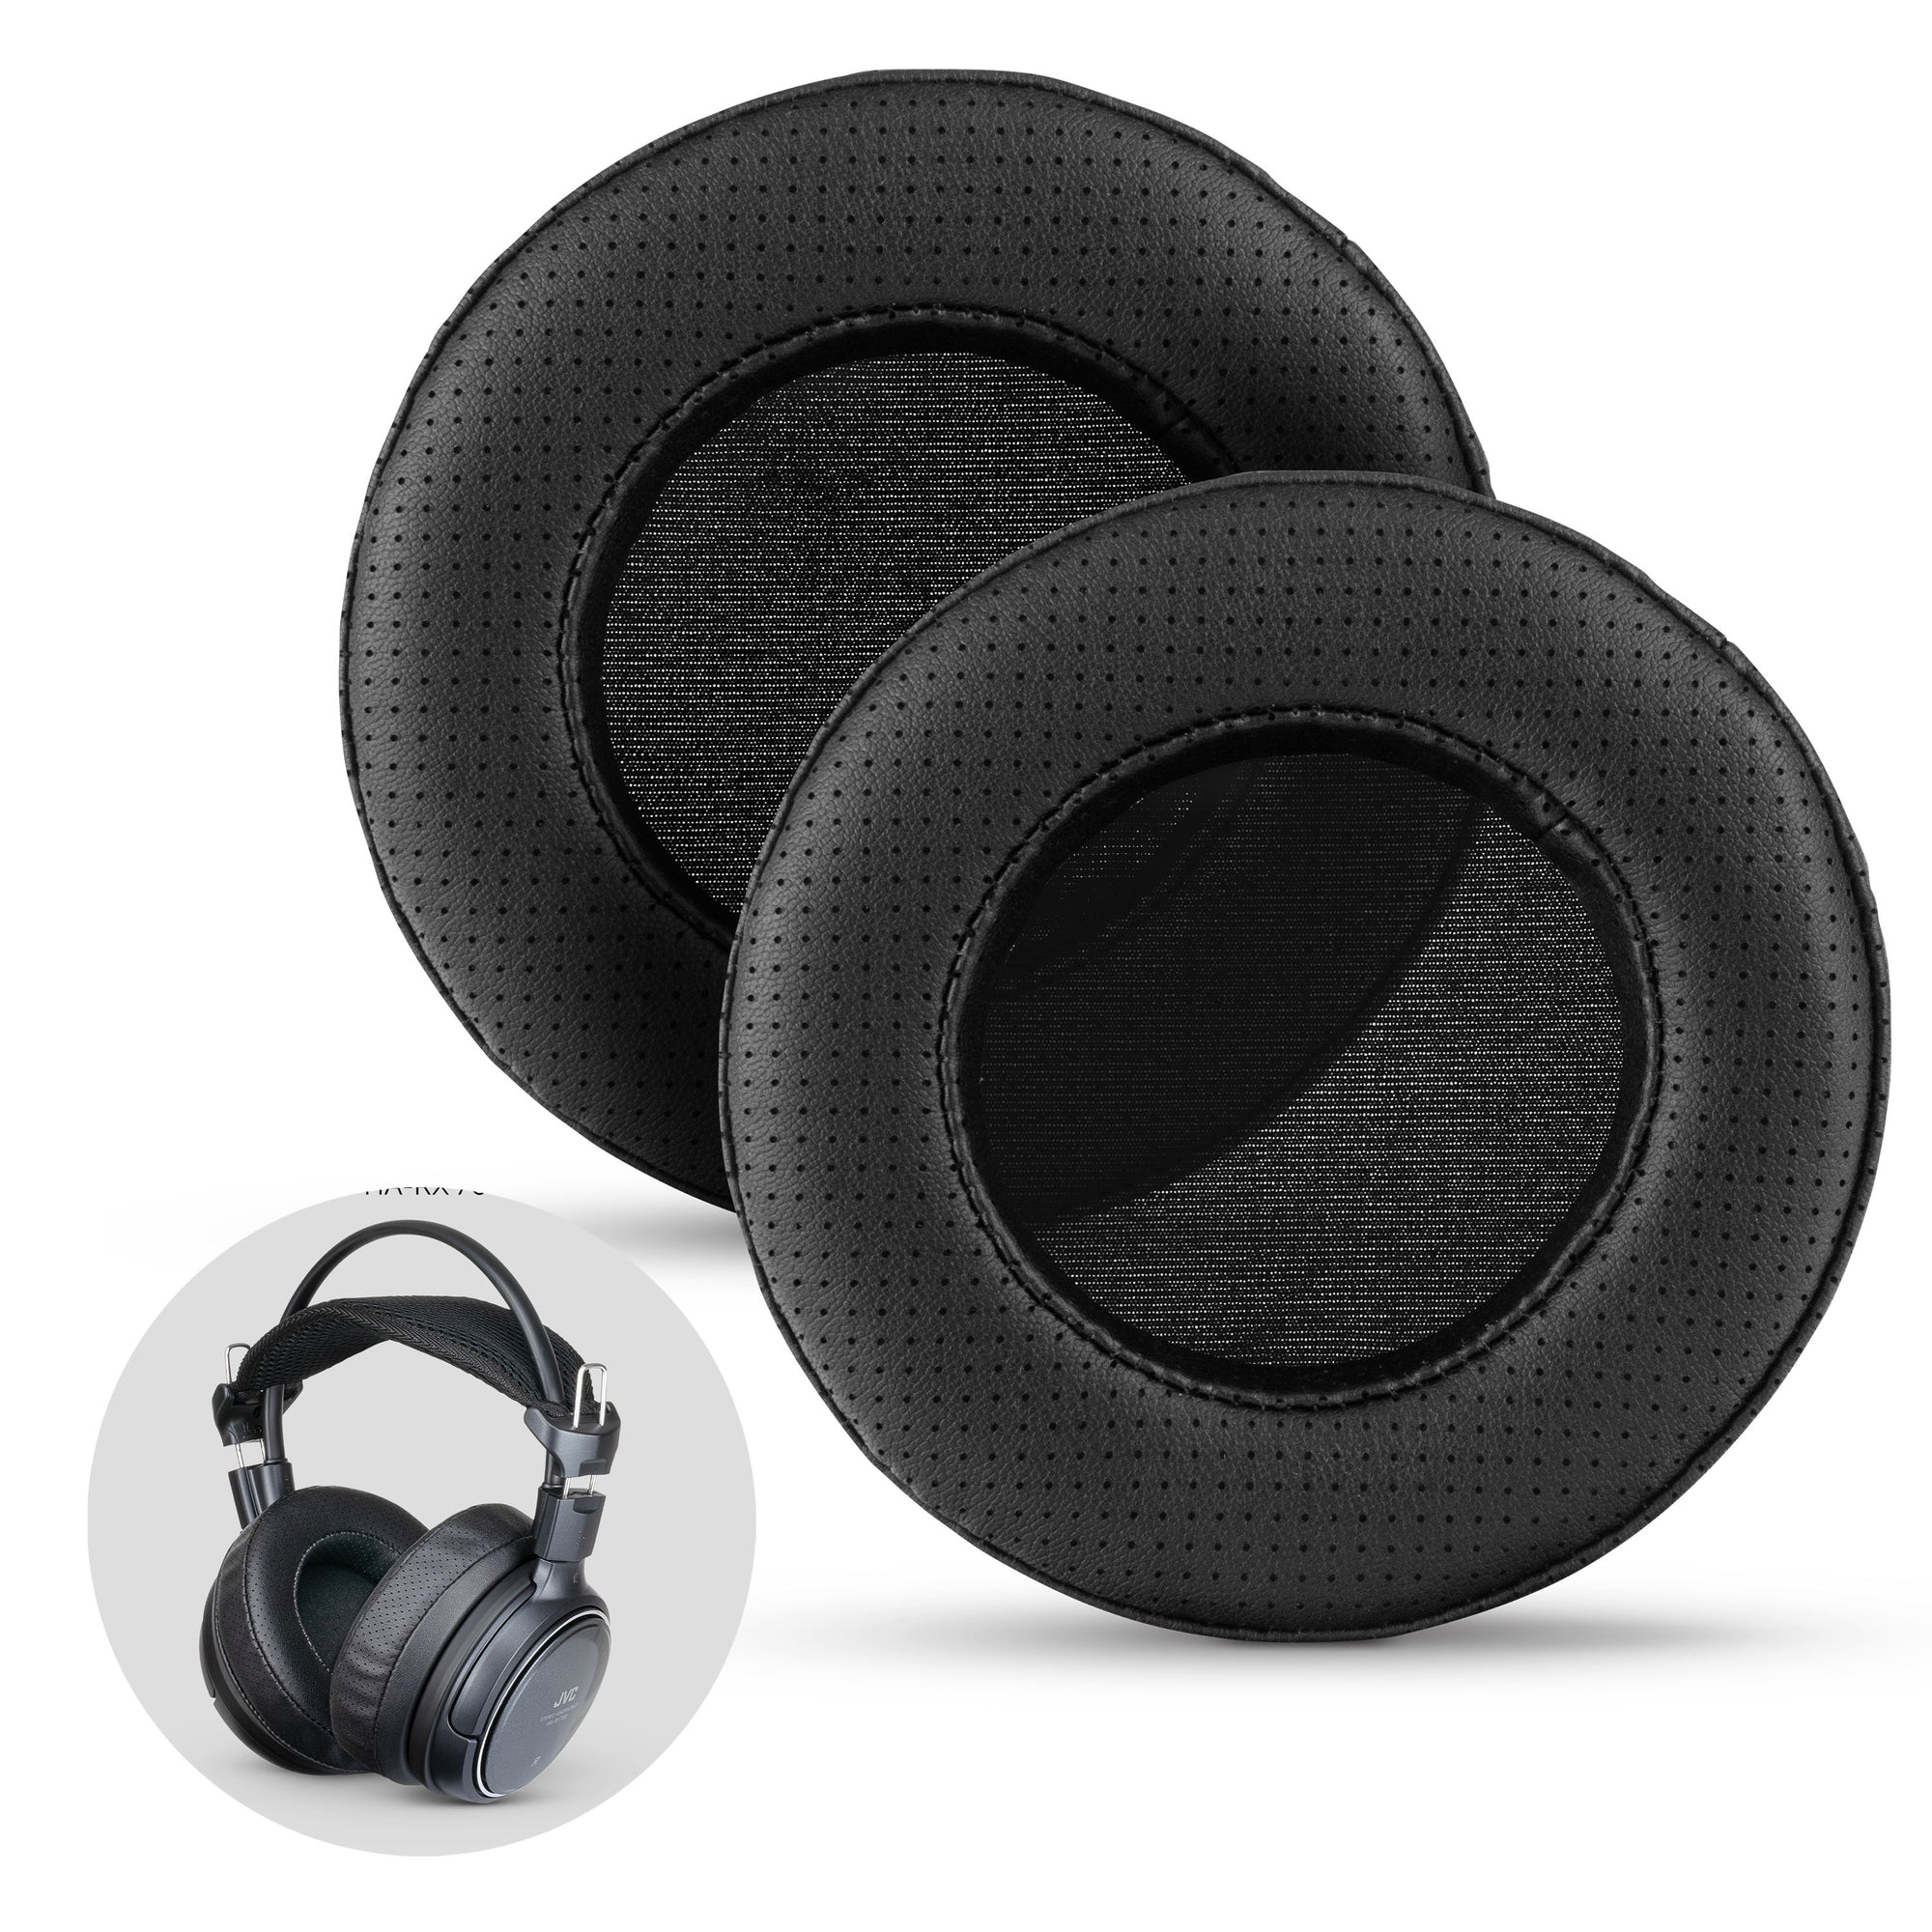 Headphone Memory Foam Earpads - XL - Perforated